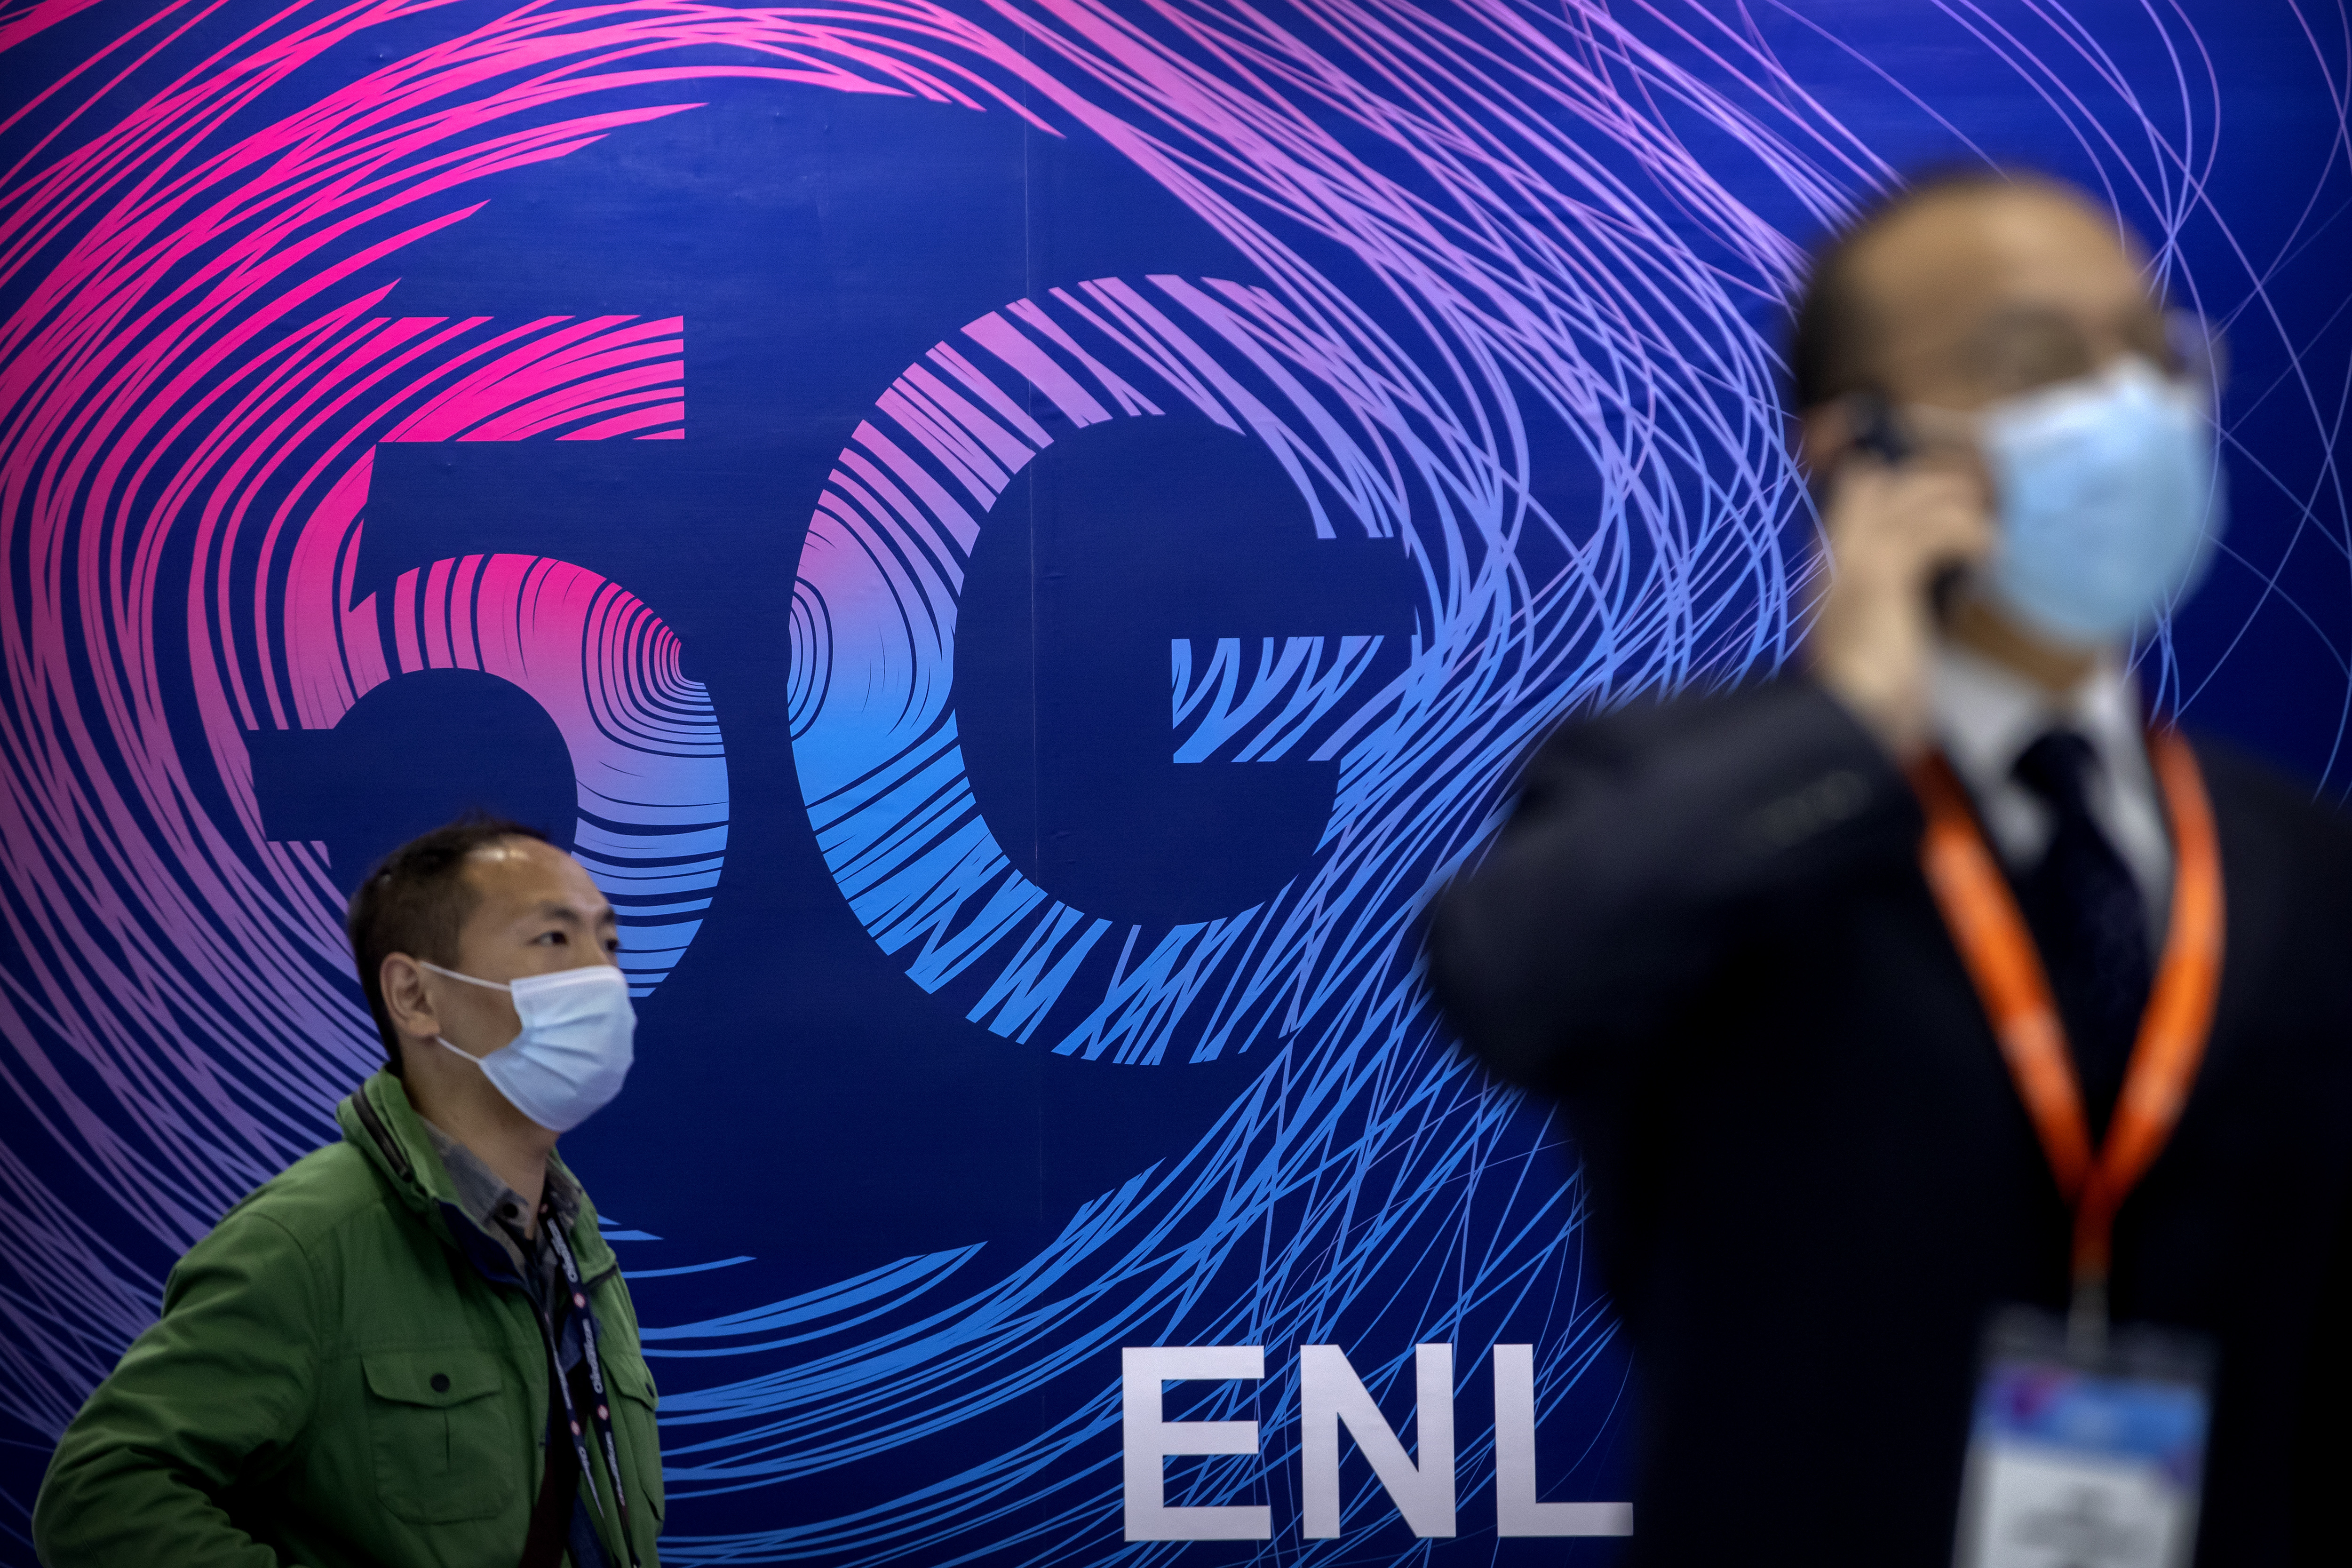 Attendees wearing face masks to protect against the coronavirus walk past an advertisement for 5G cellular technology at the PT Expo in Beijing, Wednesday, Oct. 14, 2020.